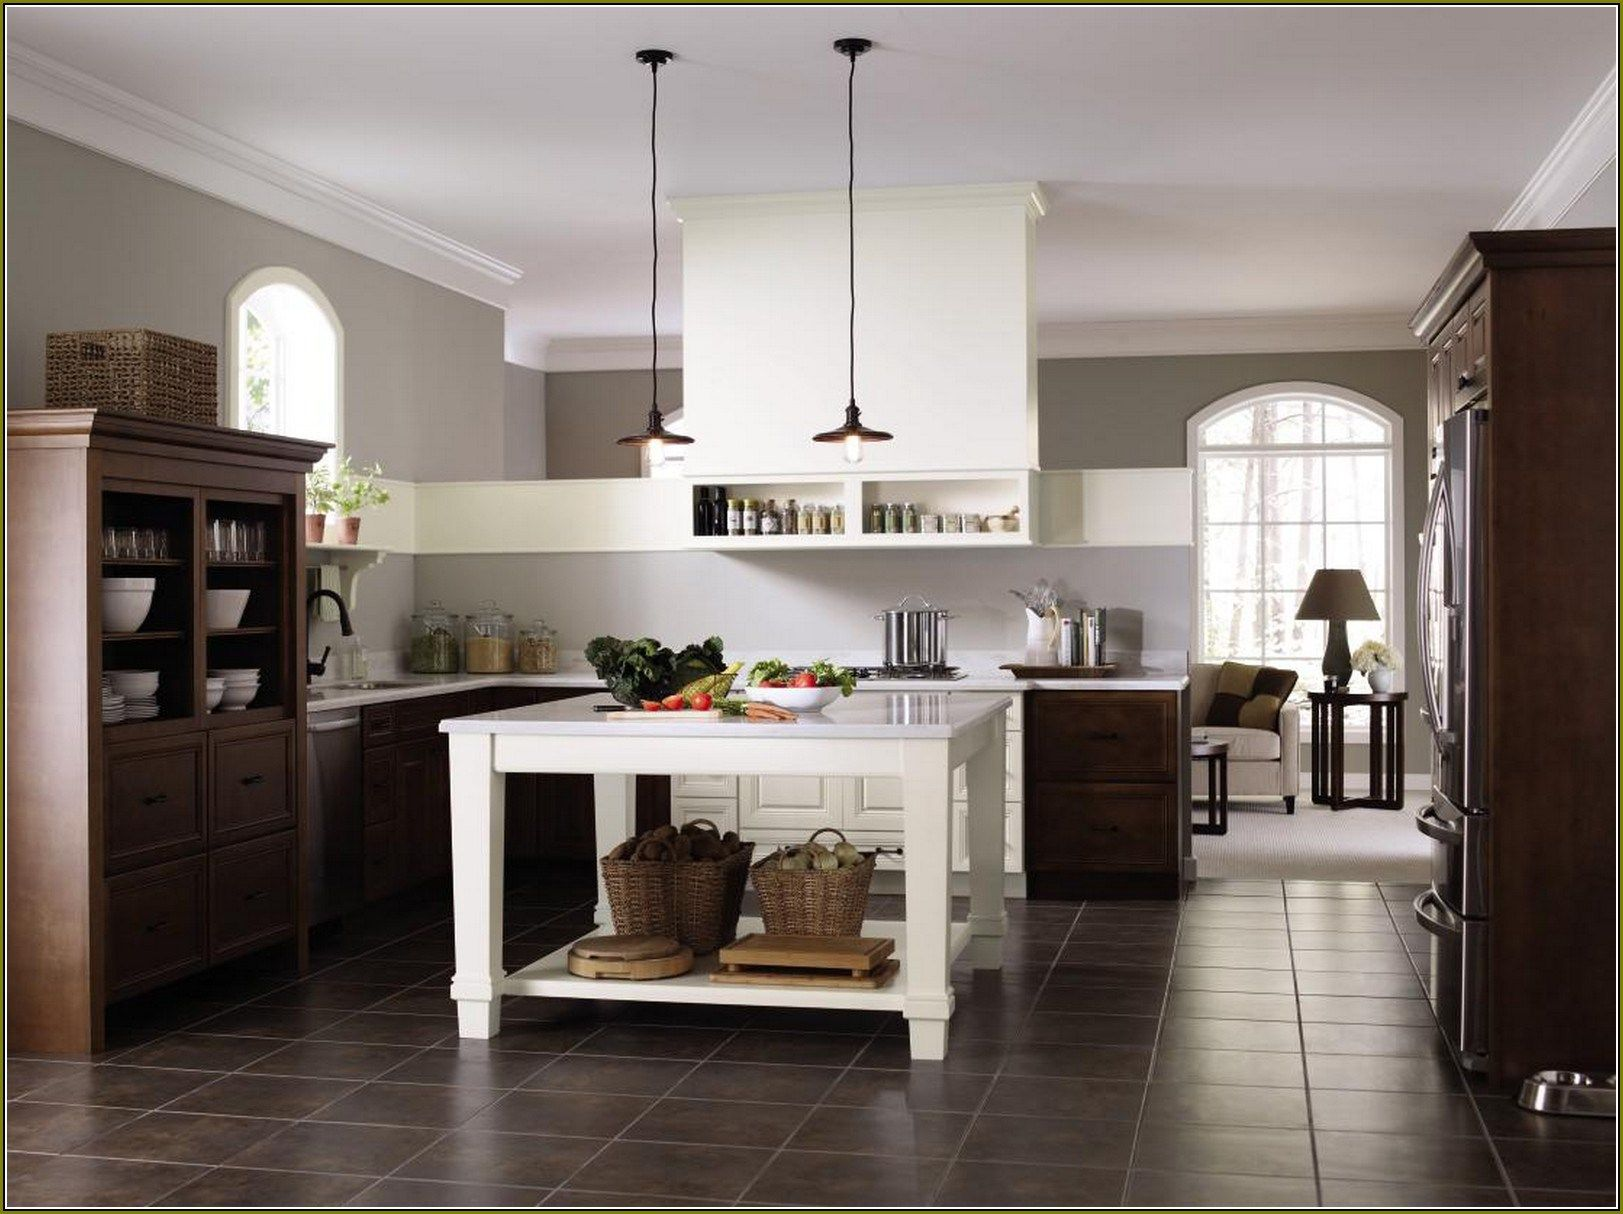 kitchen cabinets home depotkitchen cabinets home depot kitchen ...